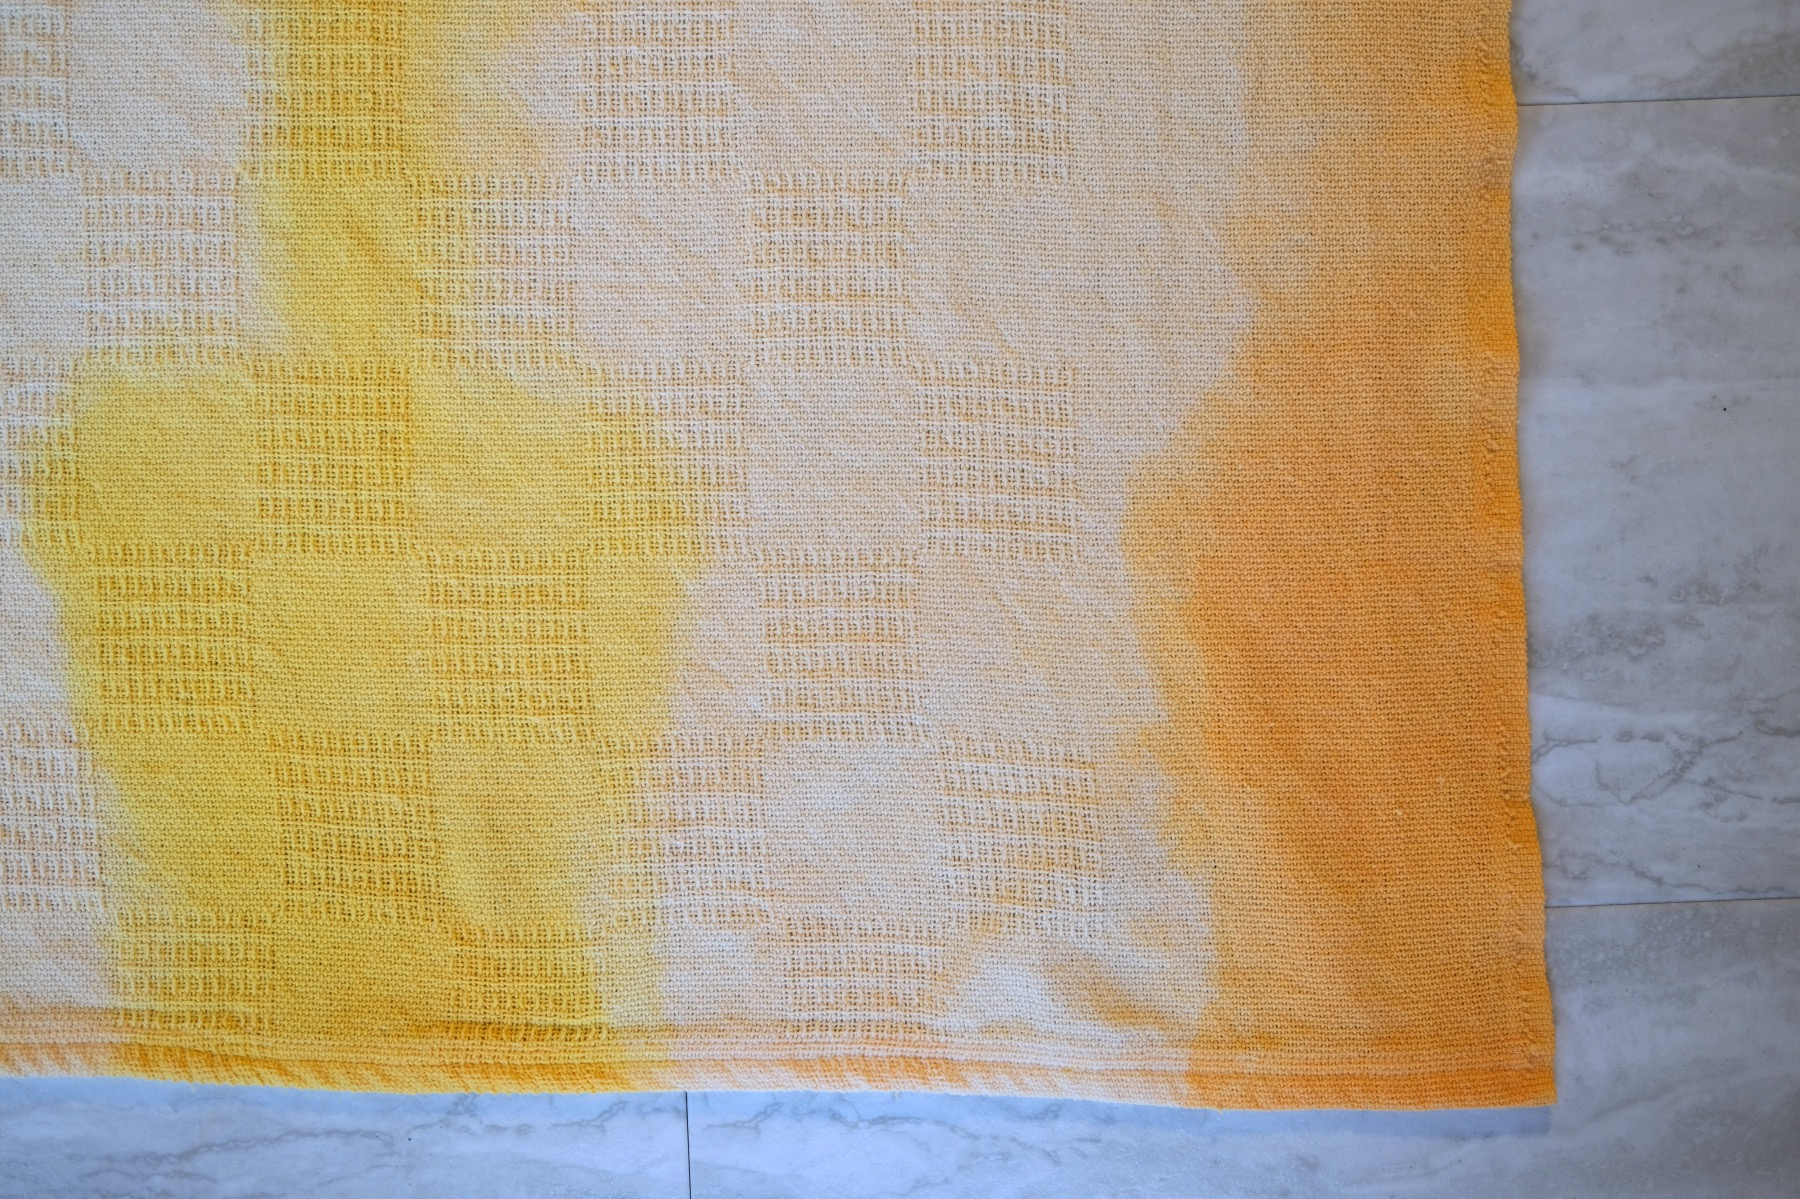 dip dyed blankets finished craft tutorial